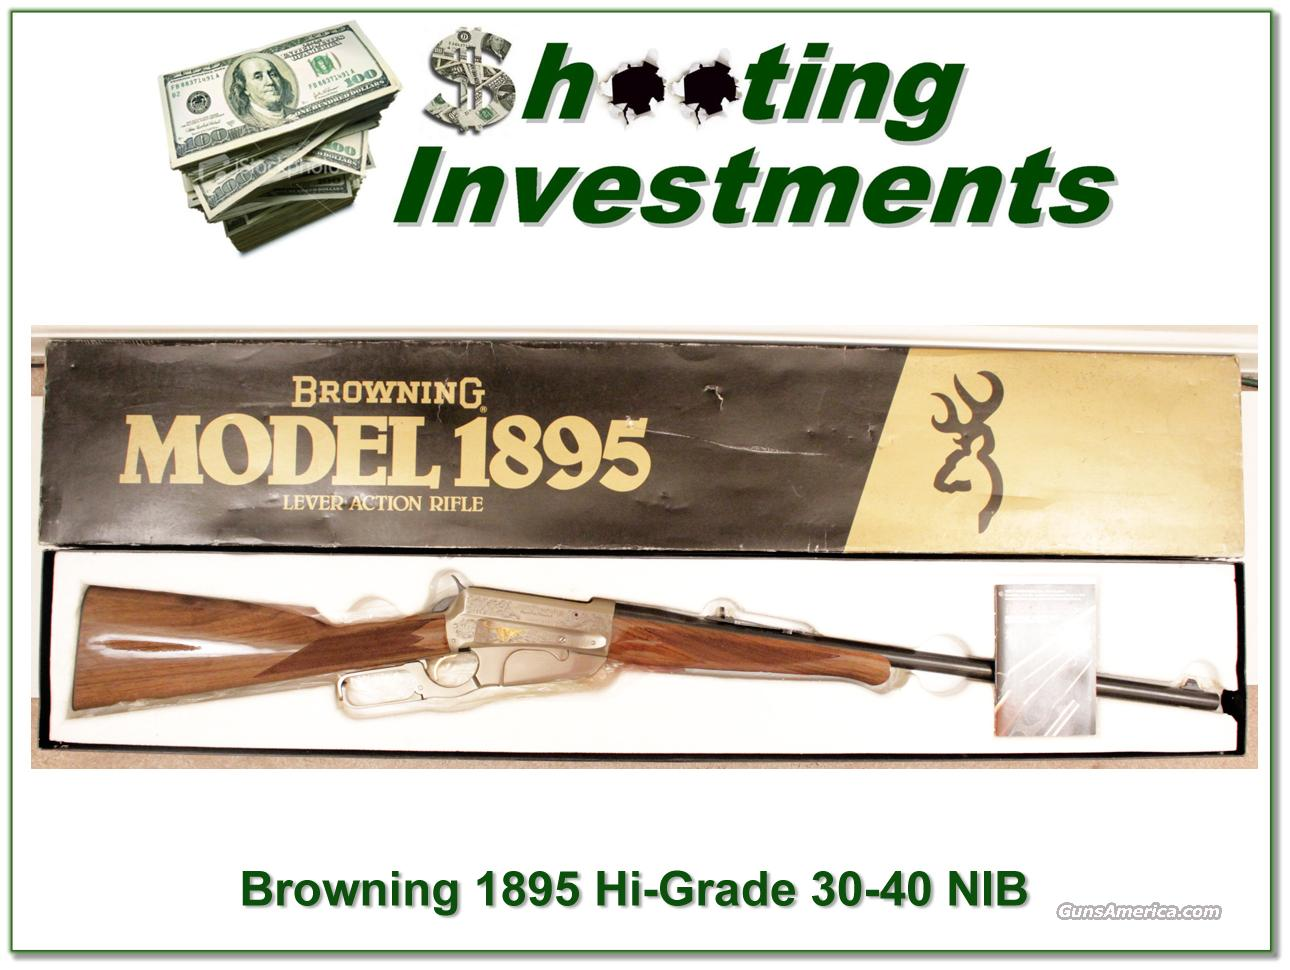 Browning 1895 High Grade 30-40 30/40 NIB  Guns > Rifles > Browning Rifles > Lever Action